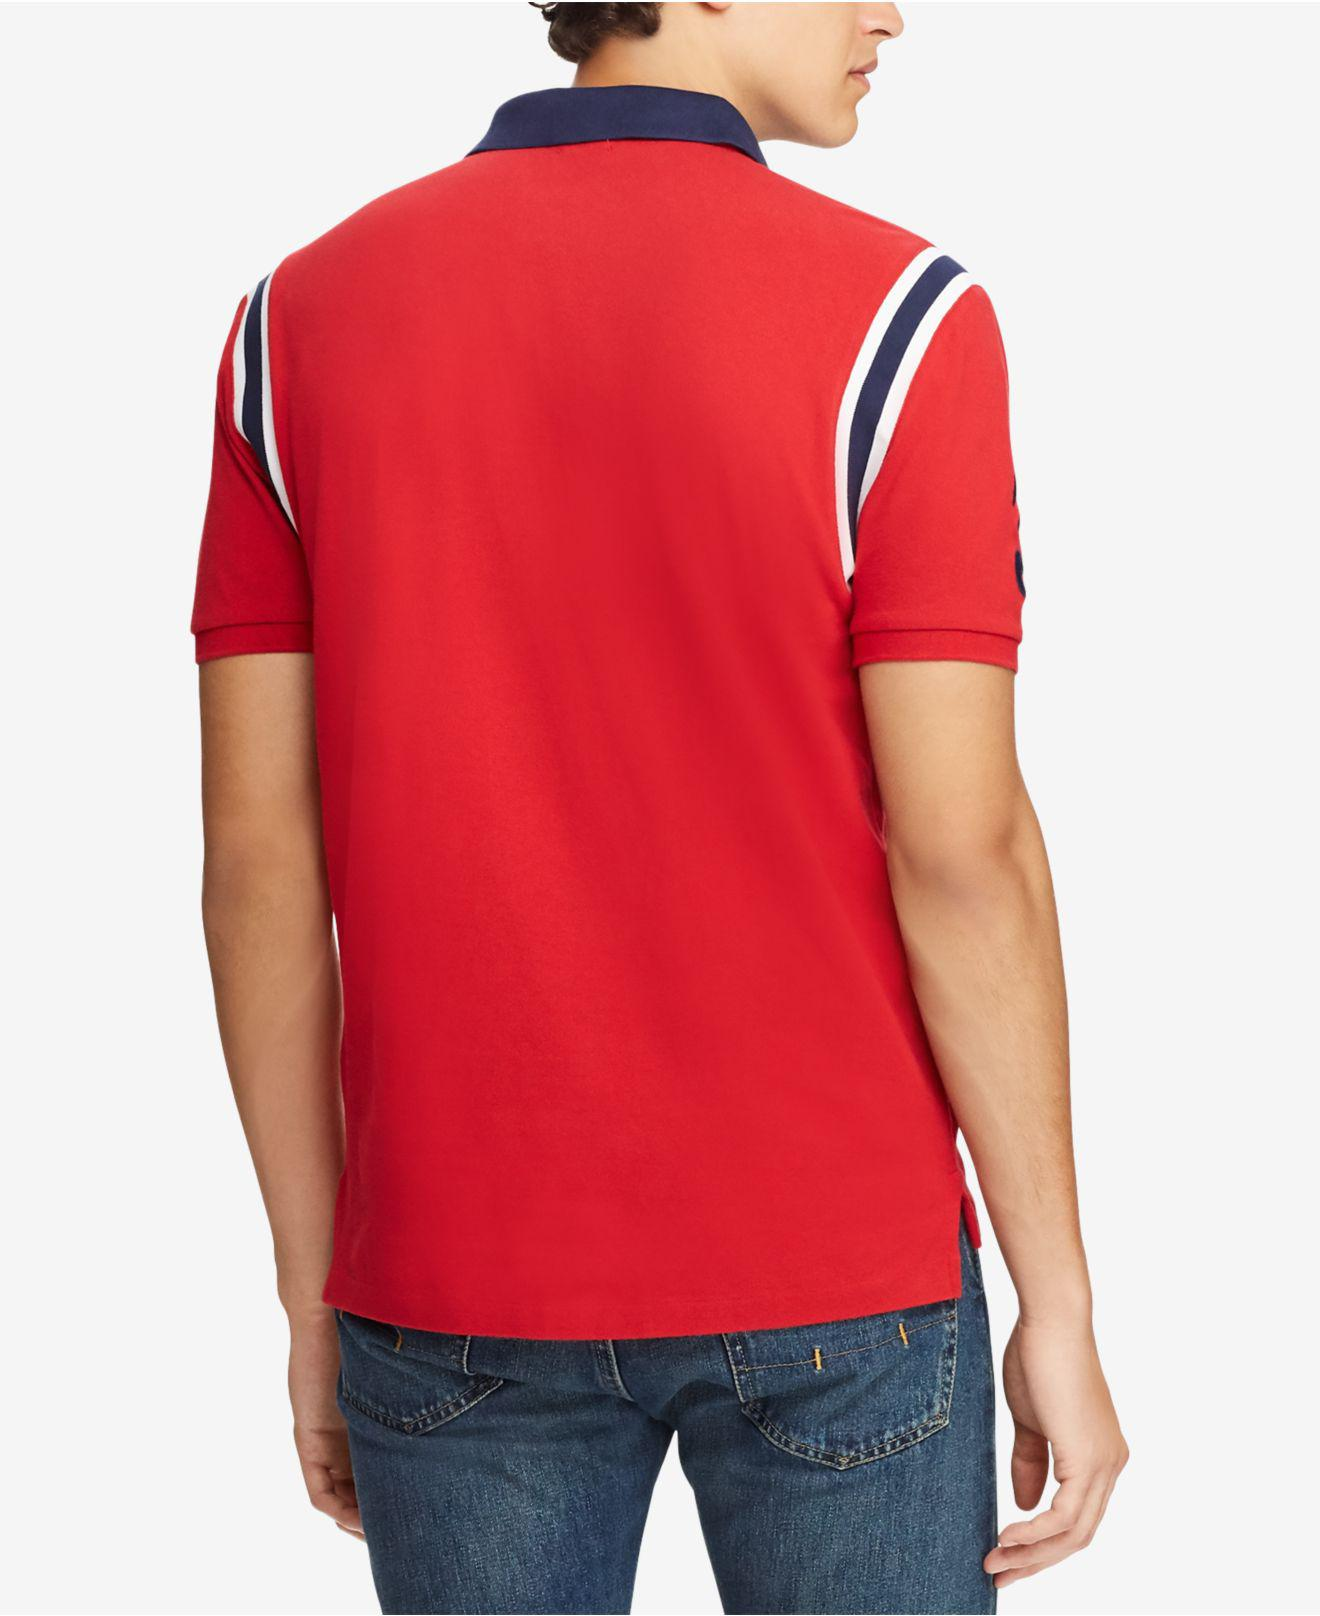 e374e5db Lyst - Polo Ralph Lauren Big Pony Vintage Crest Short-sleeve Polo Shirt in  Red for Men